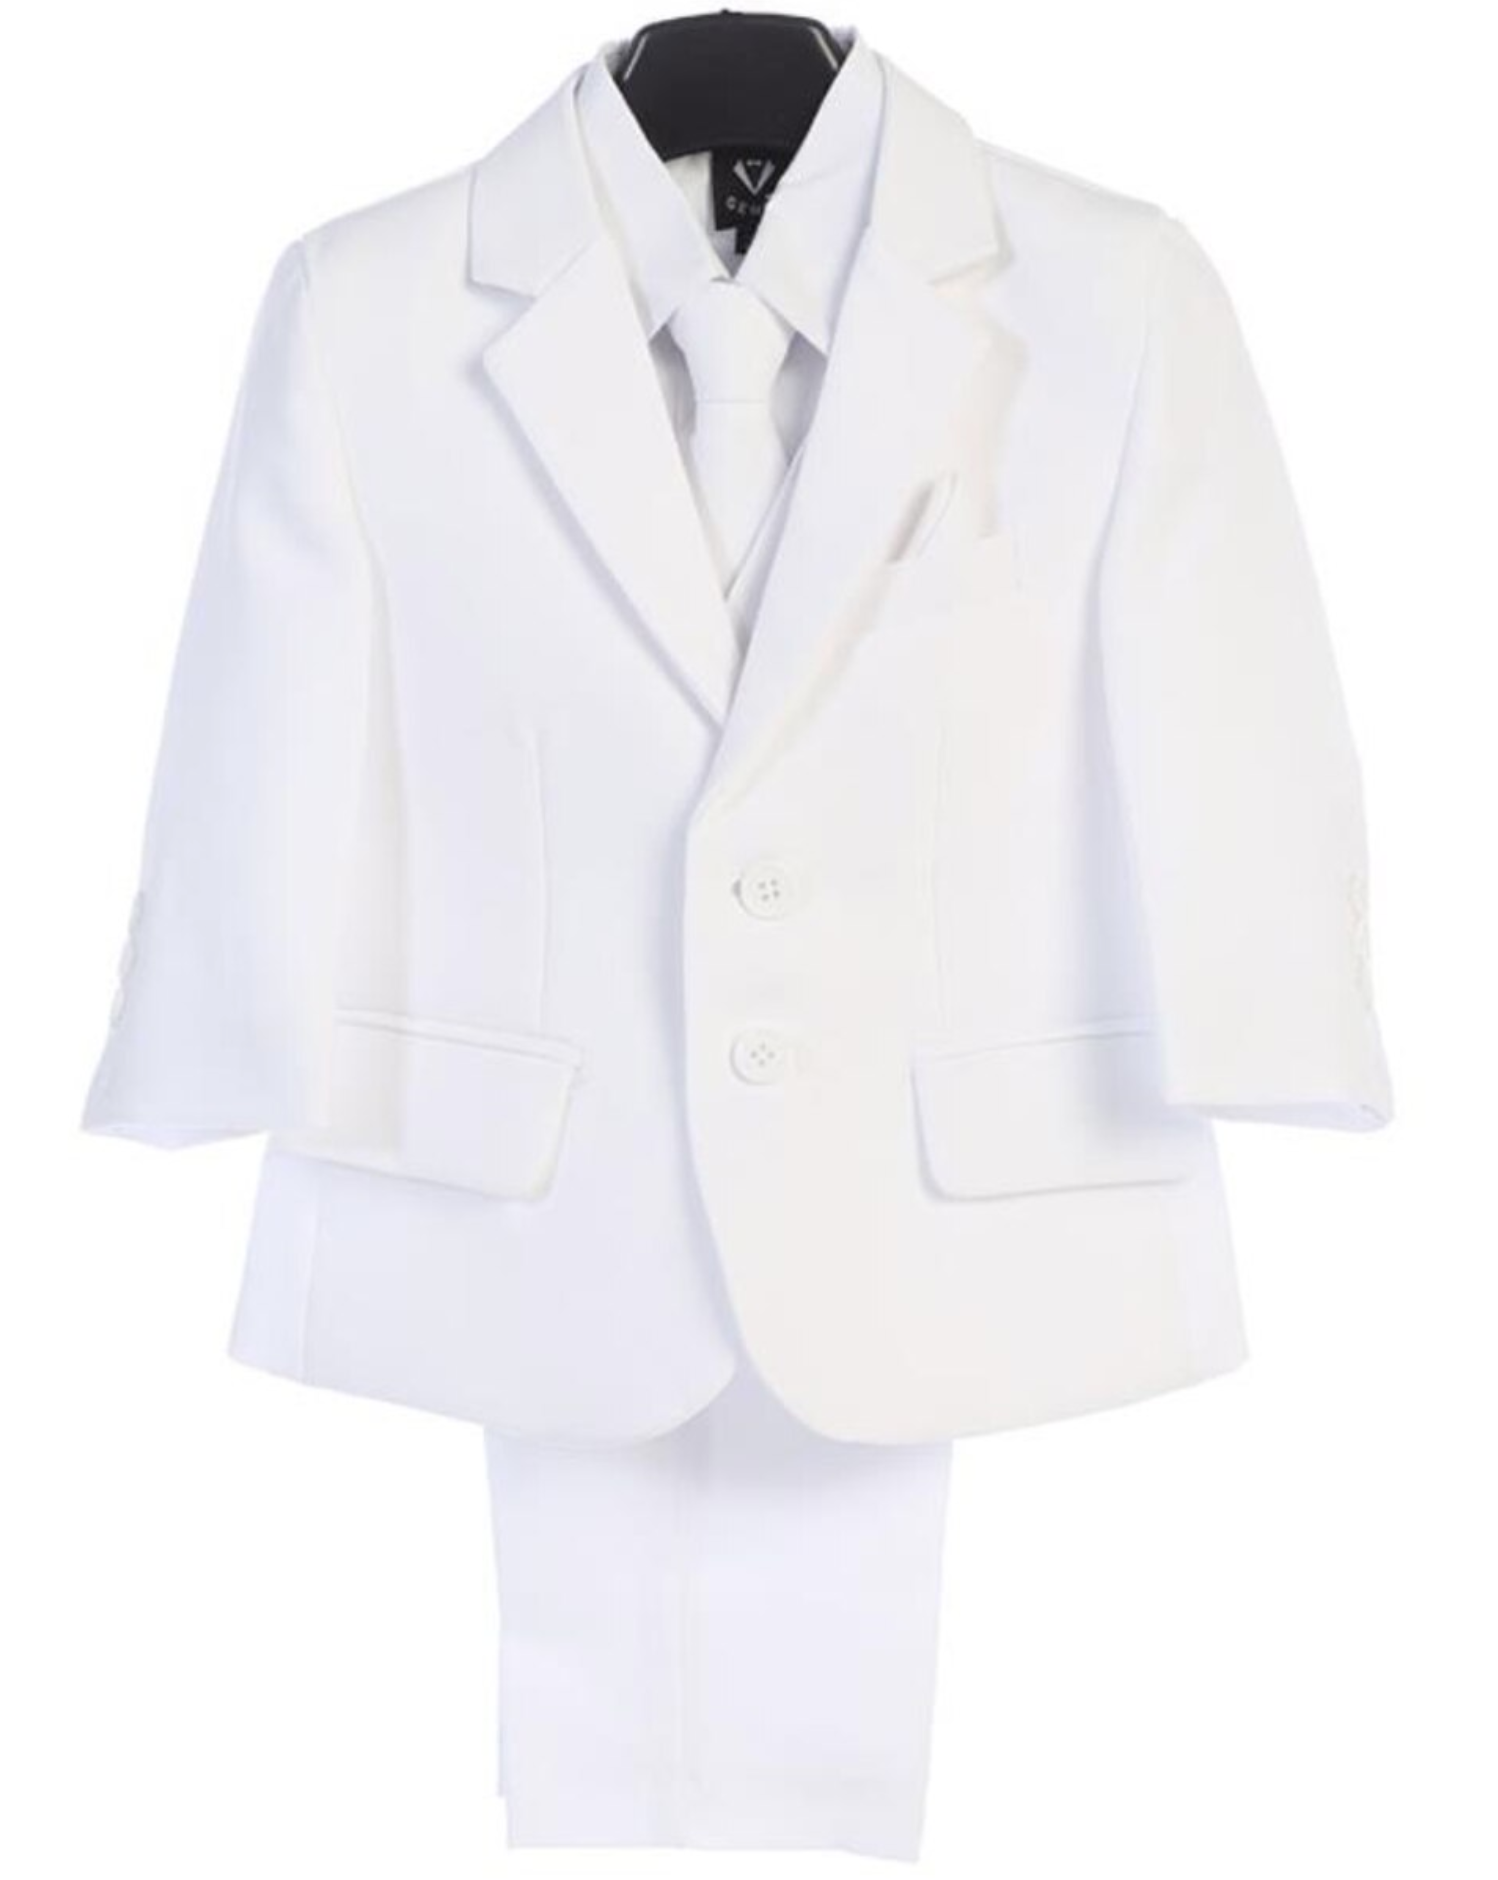 boys-communion-suit.png